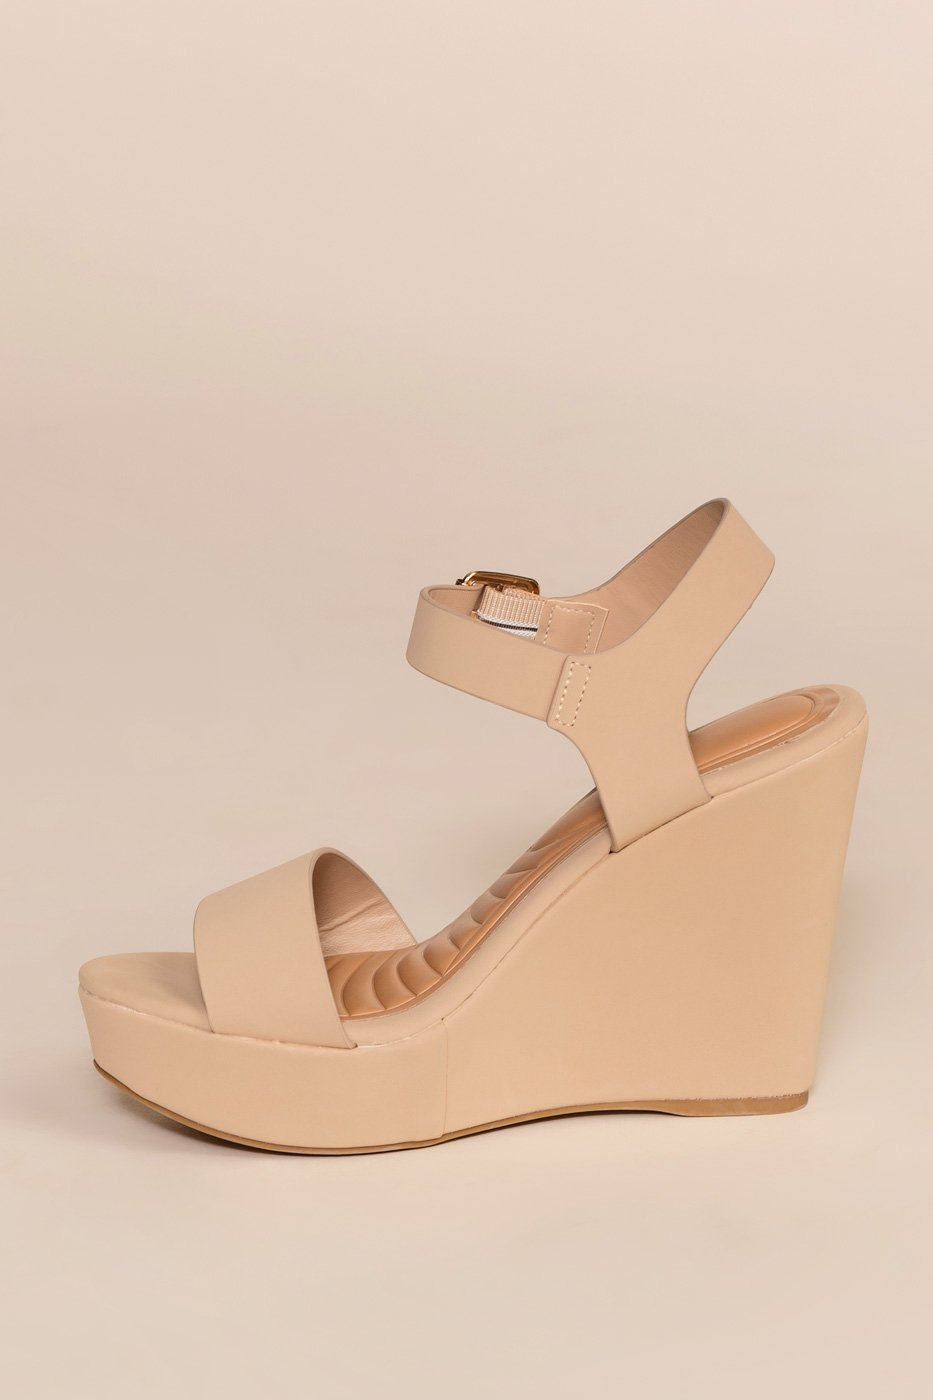 Shoes - Remi Wedges - Nude